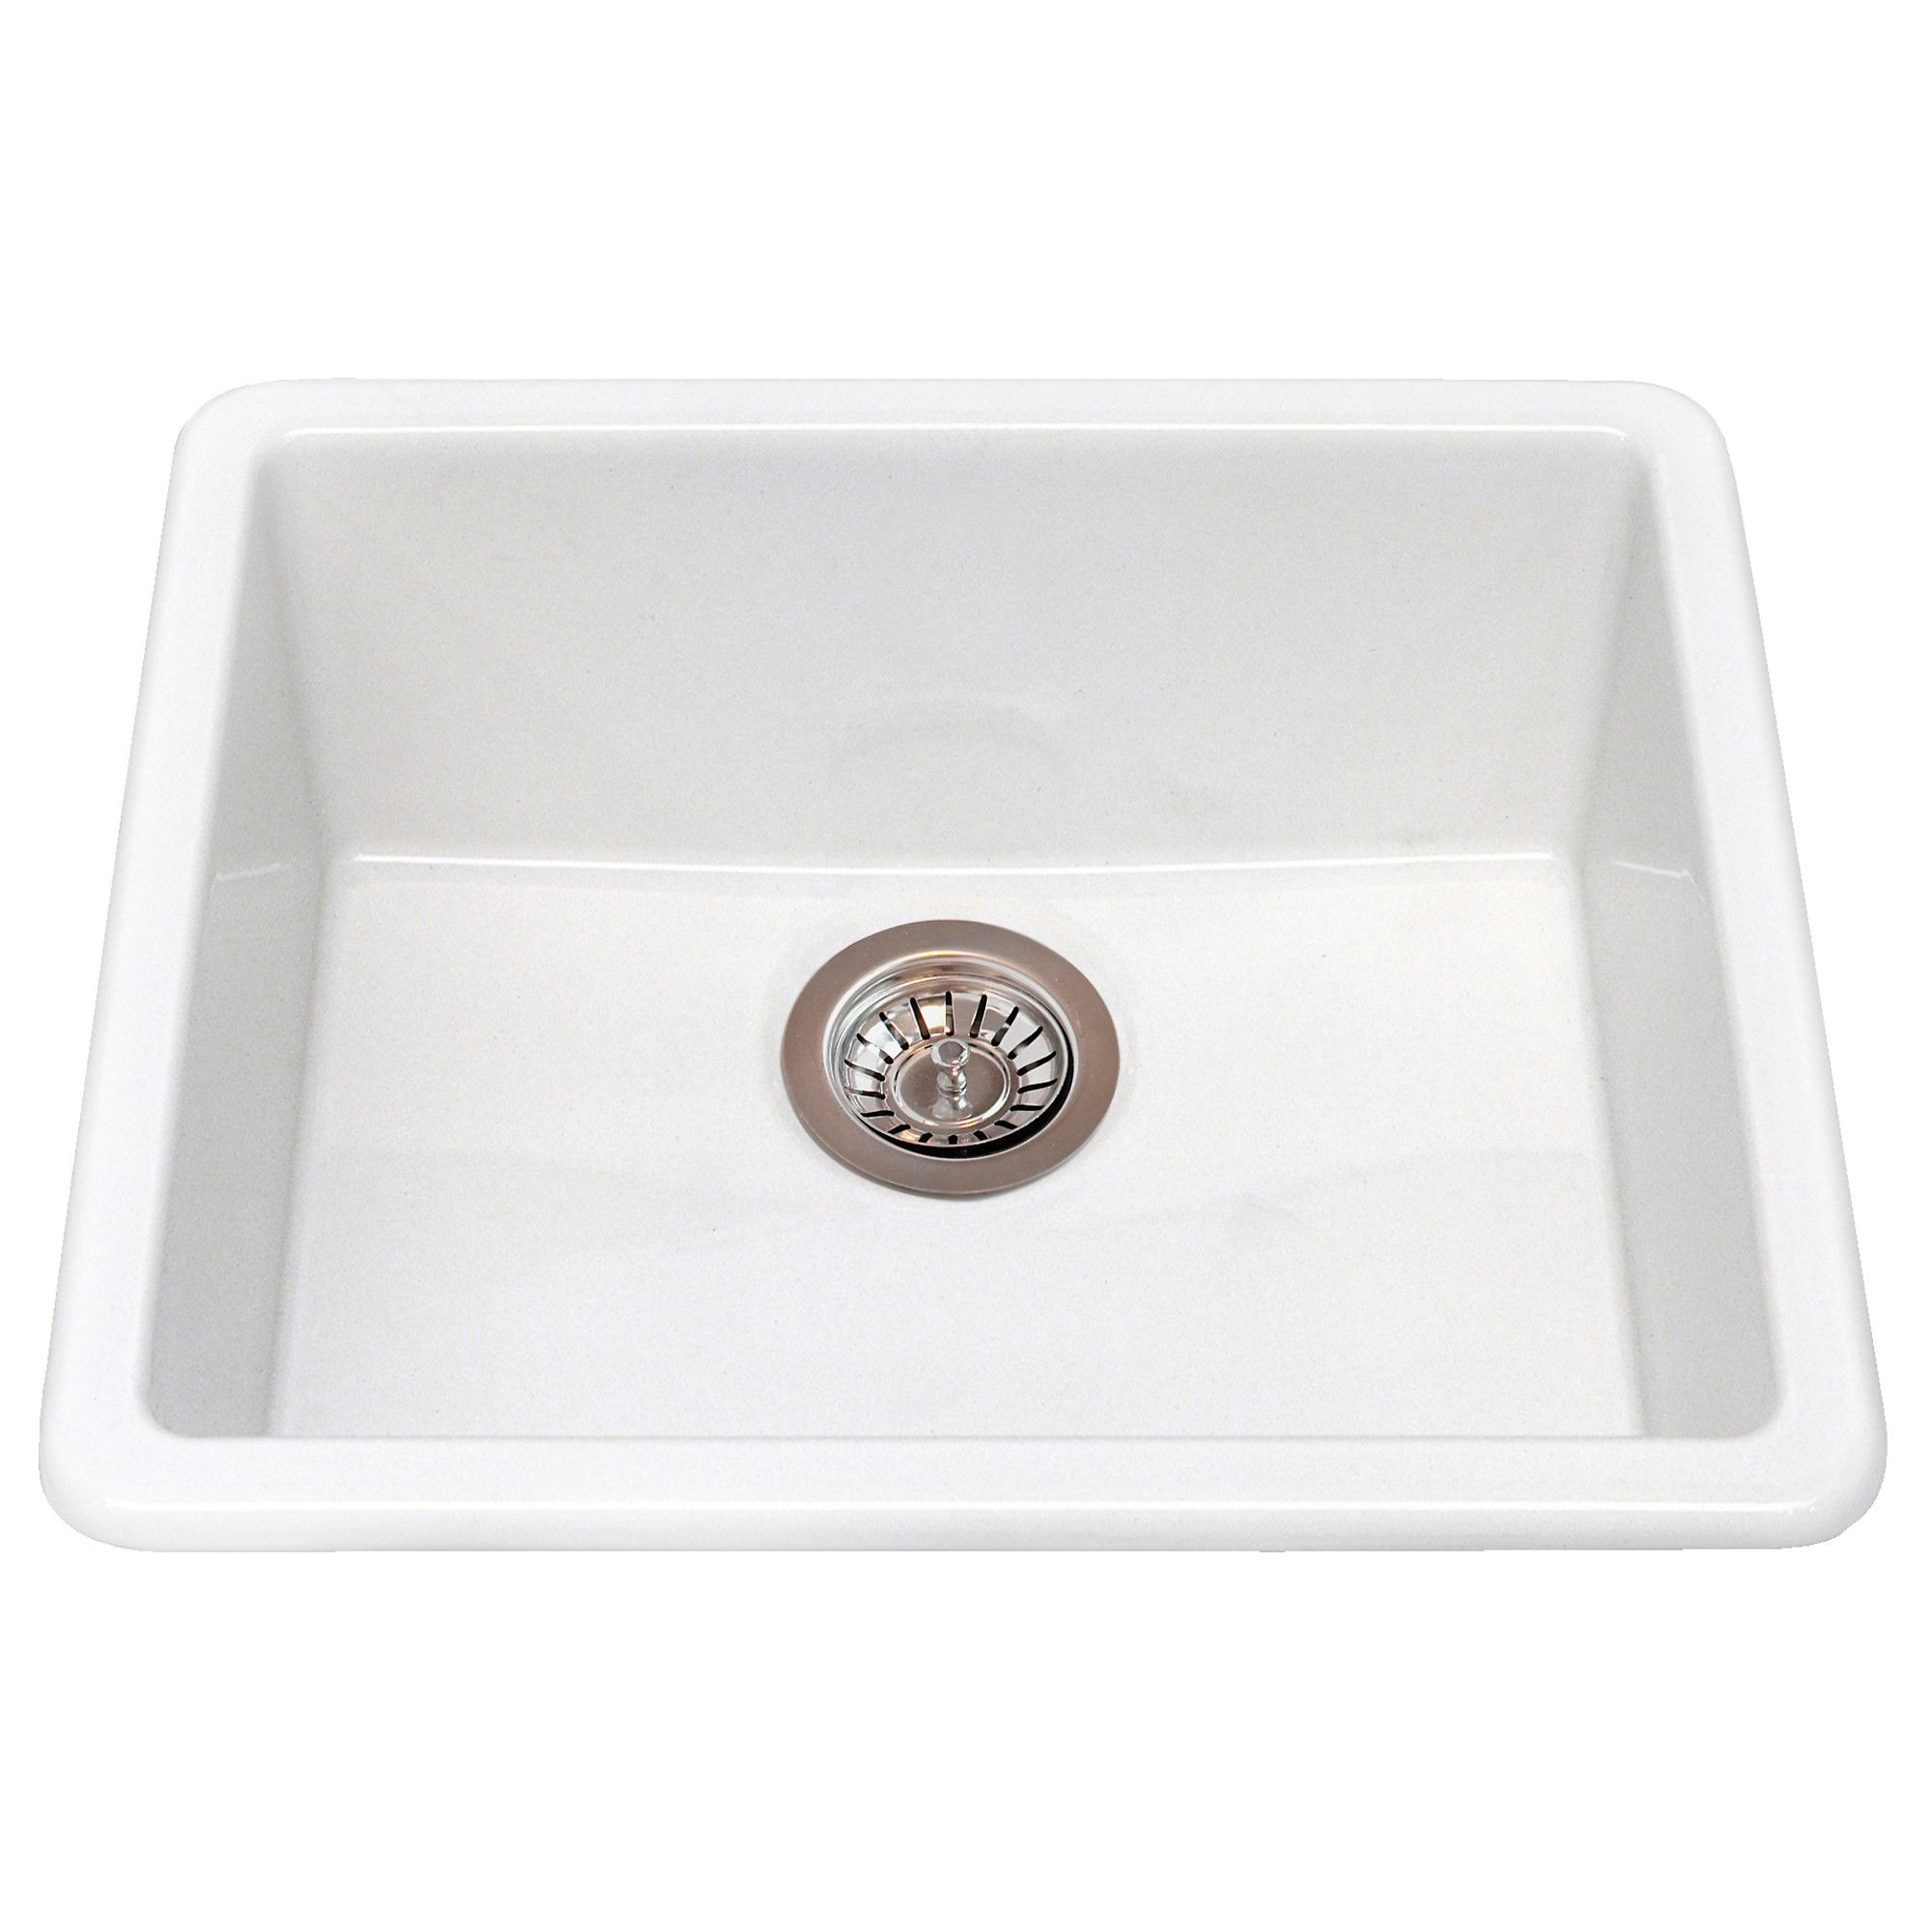 DOMSJÖ Single-bowl inset sink - IKEA Laundry Room Sink Possibility ...